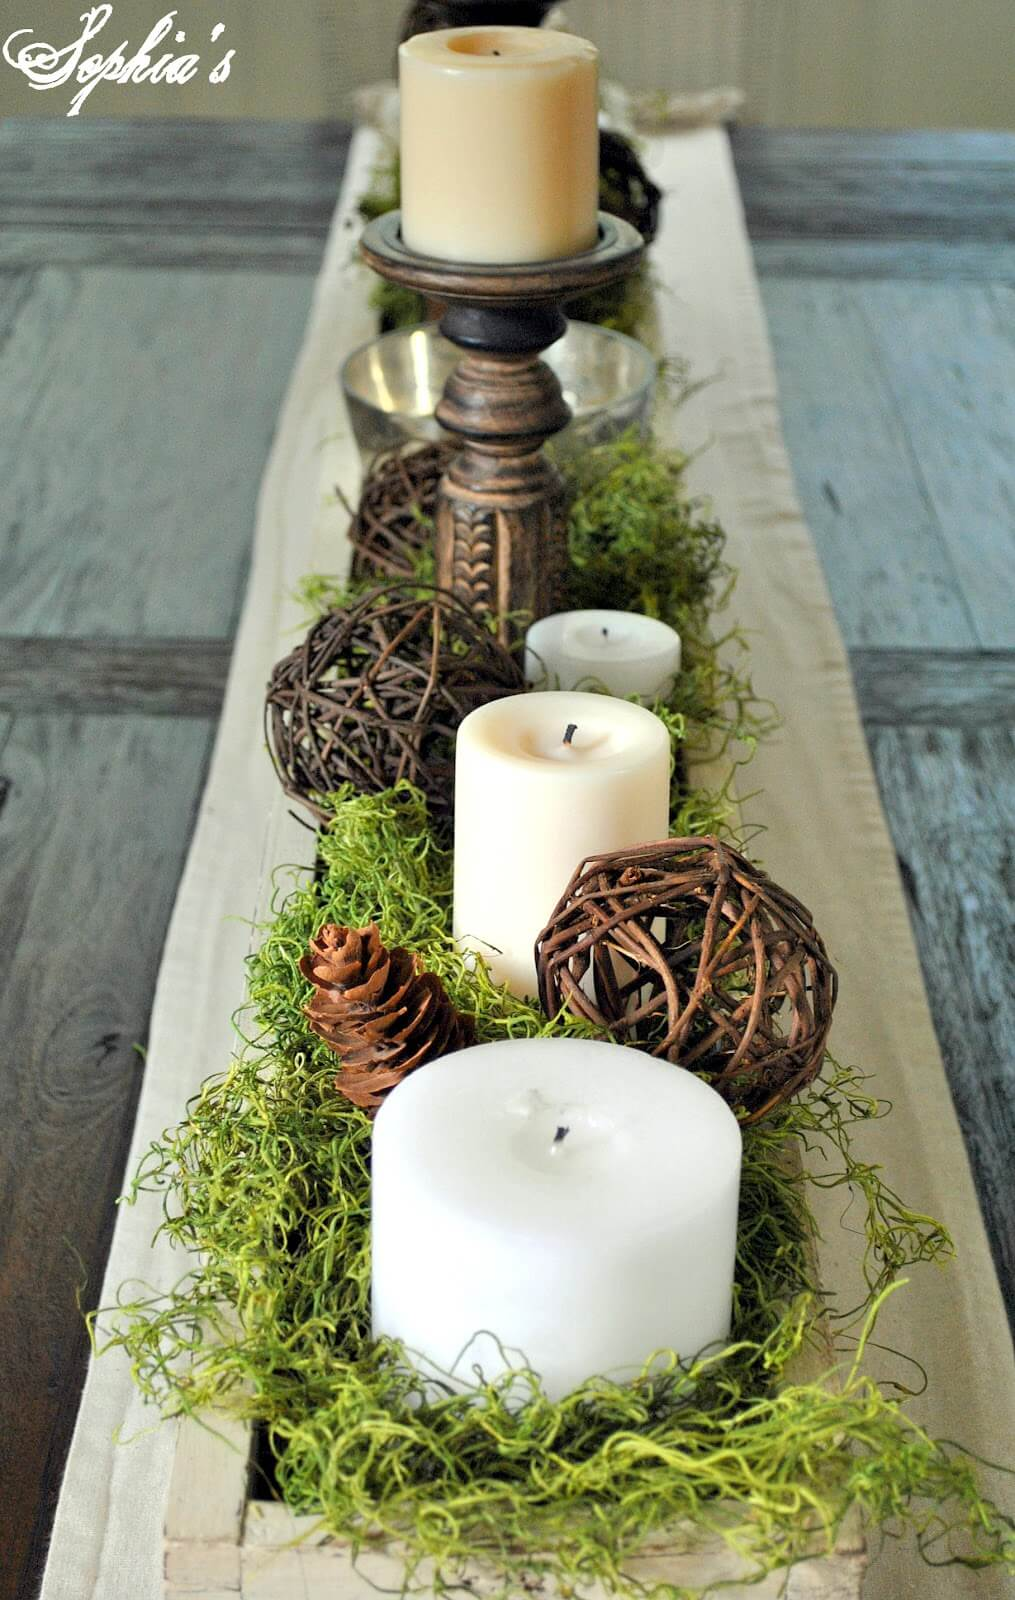 An Earthy Display with Fake Grass and Pine Cones